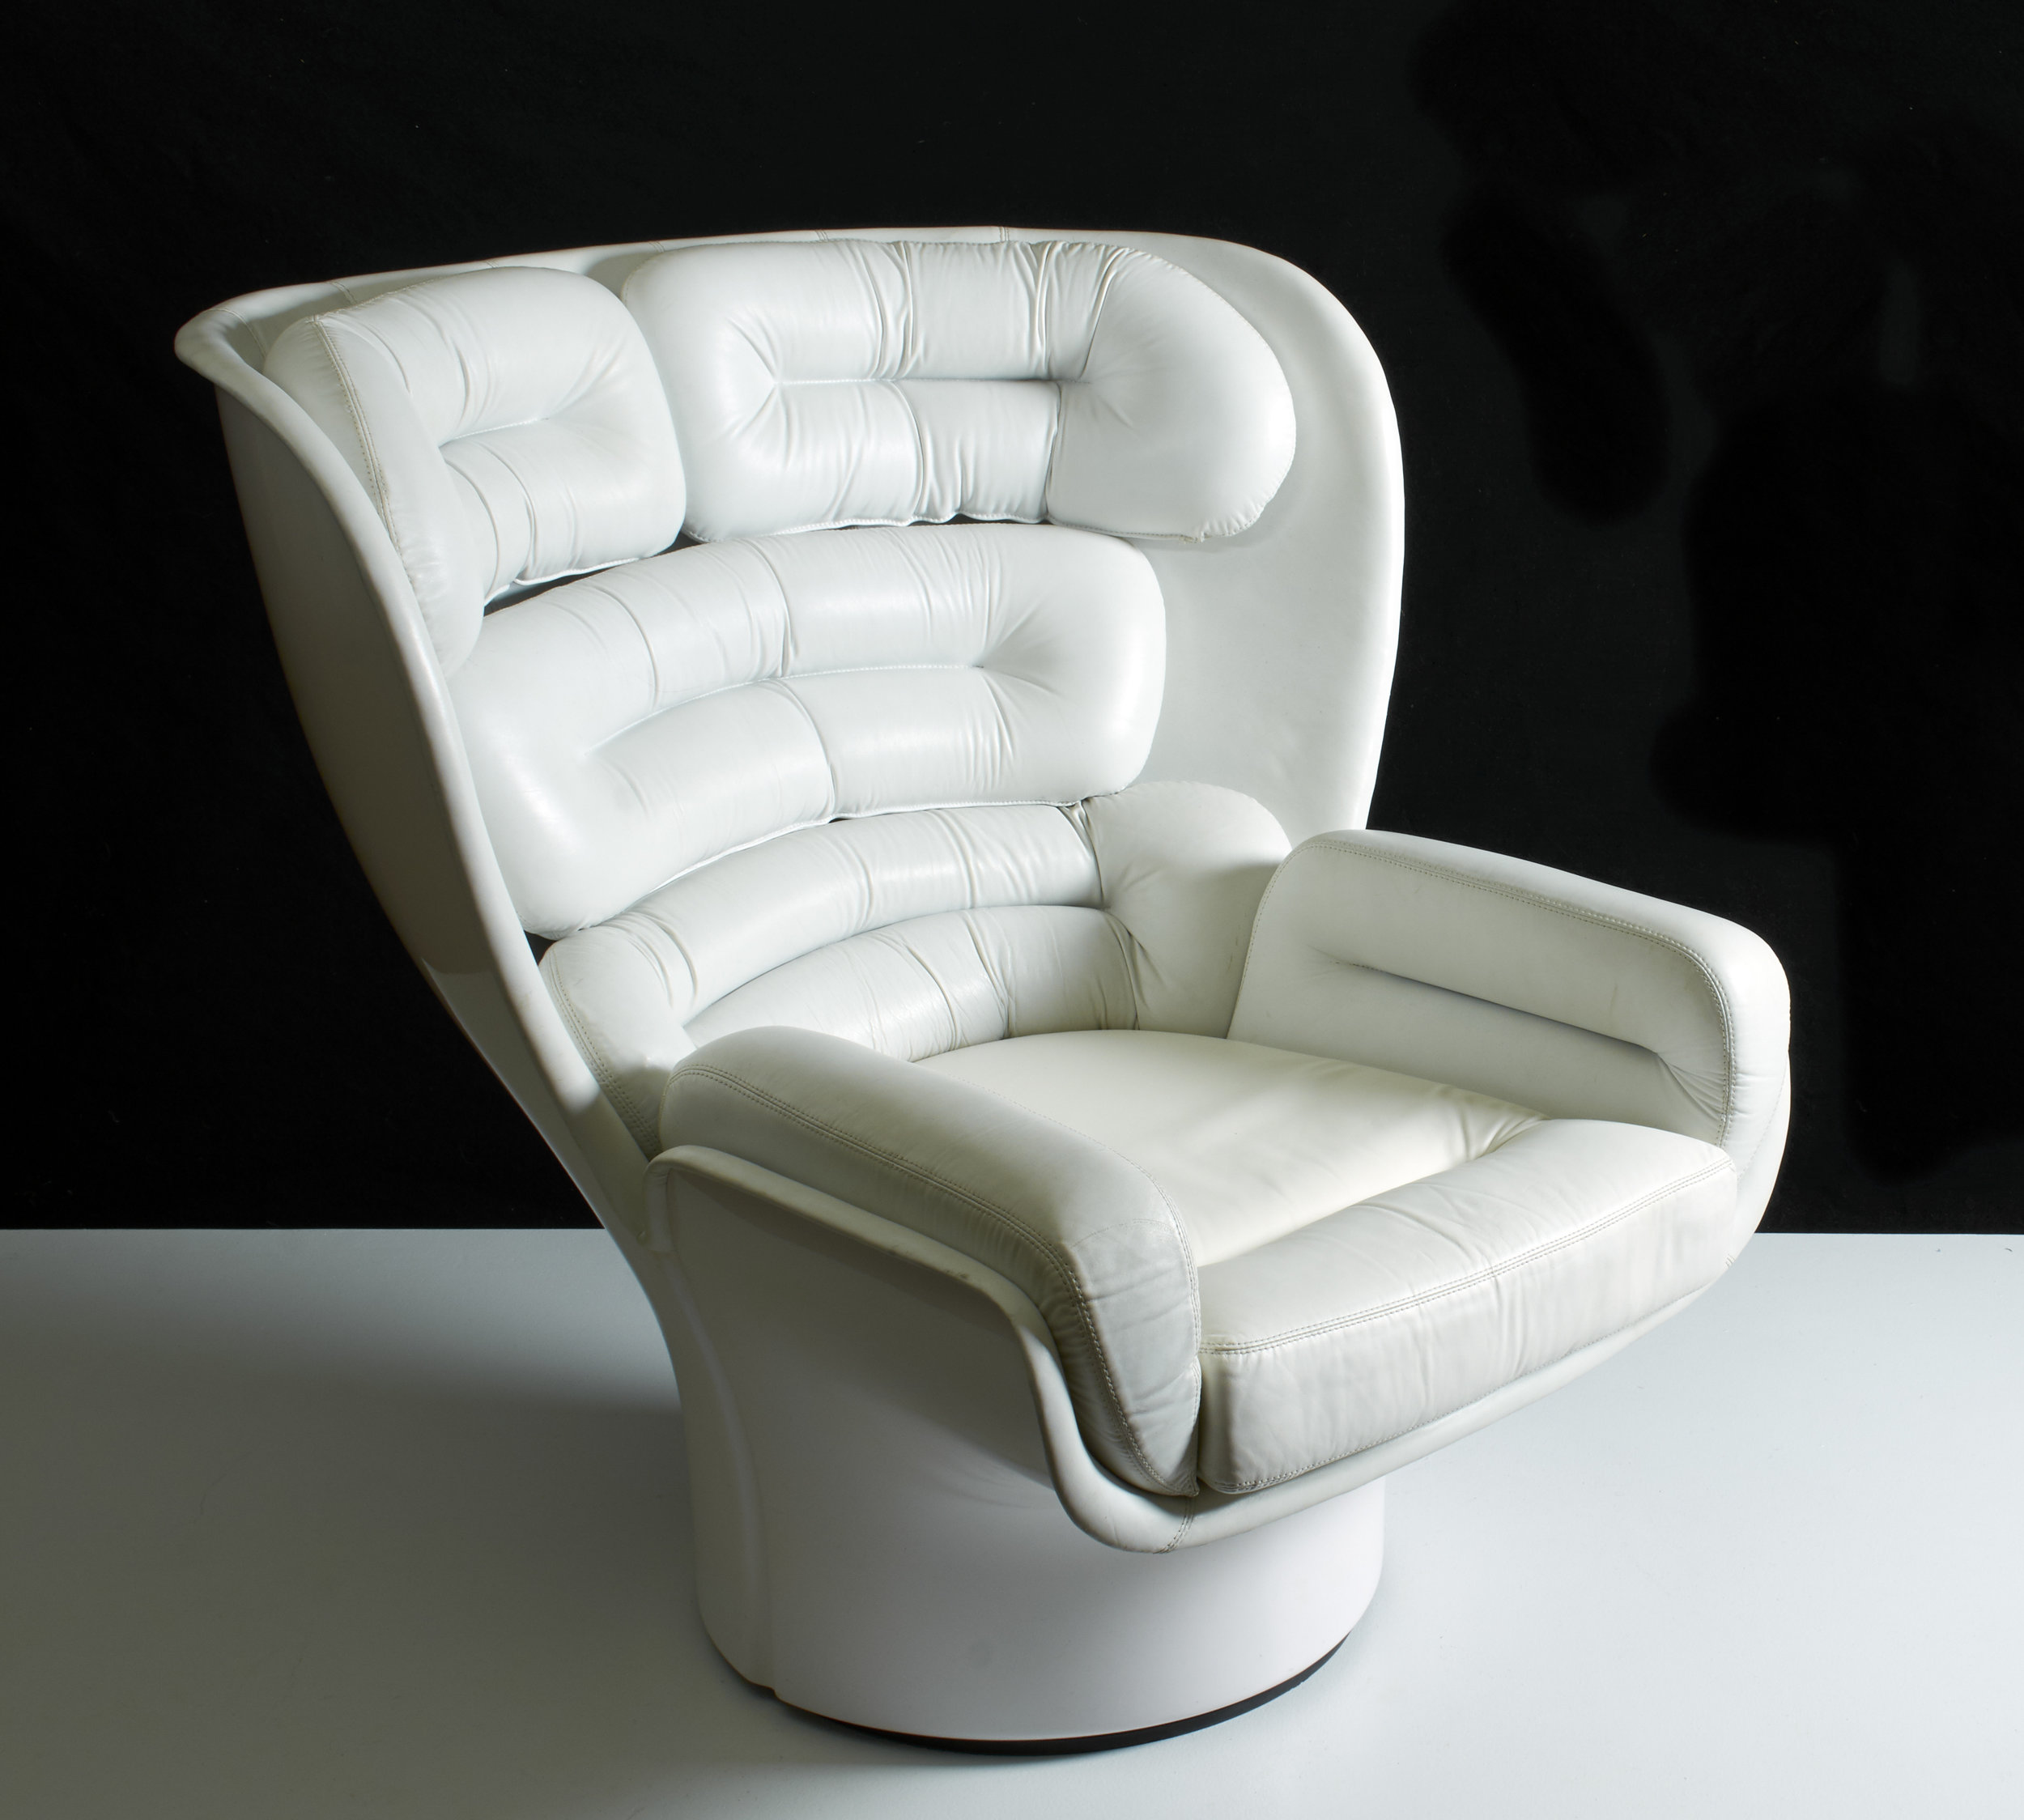 Joe Colombo 'Elda' Chair, circa 1960's